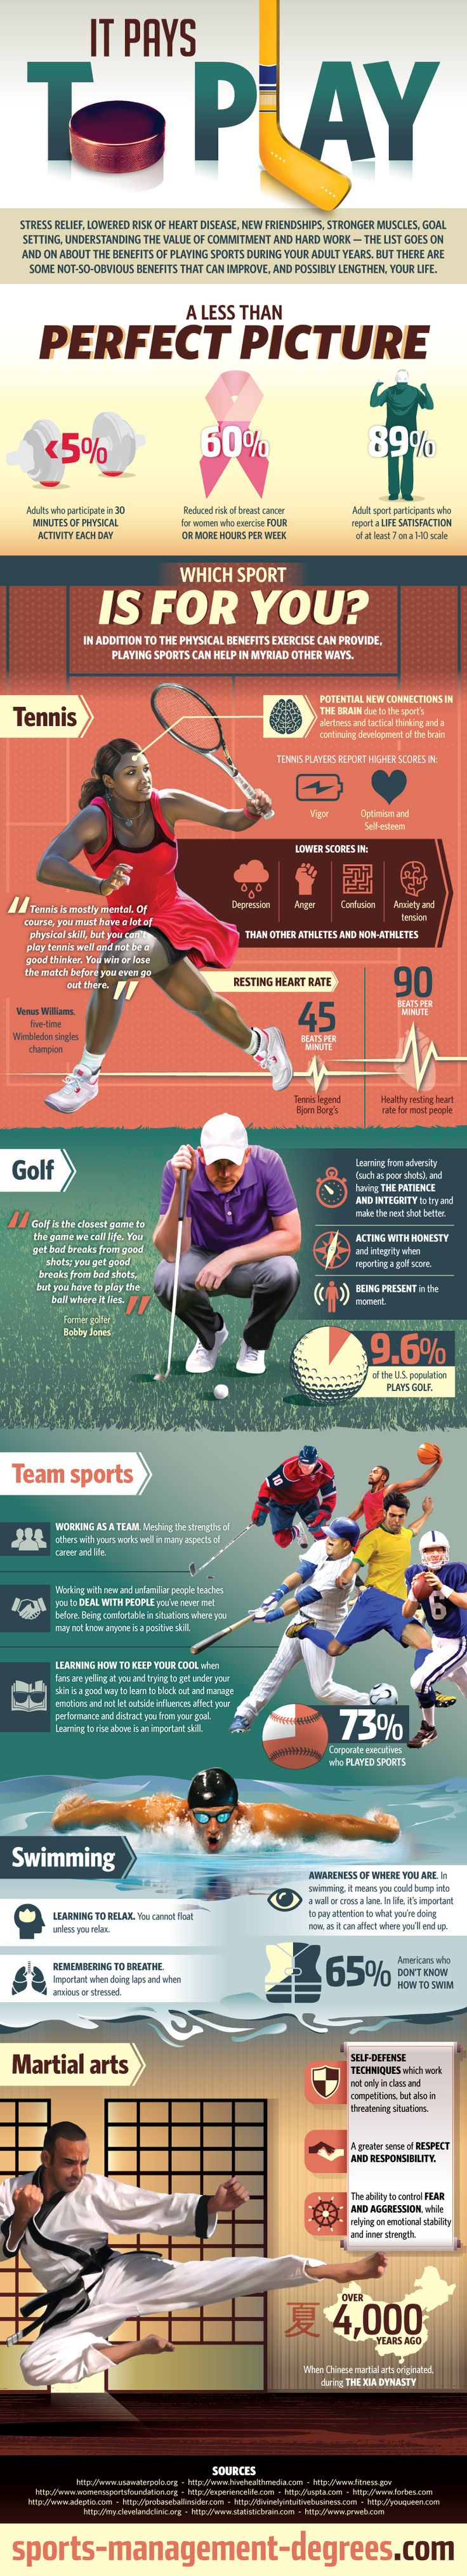 The Benefits of Playing Sports Aren't Just Physical!